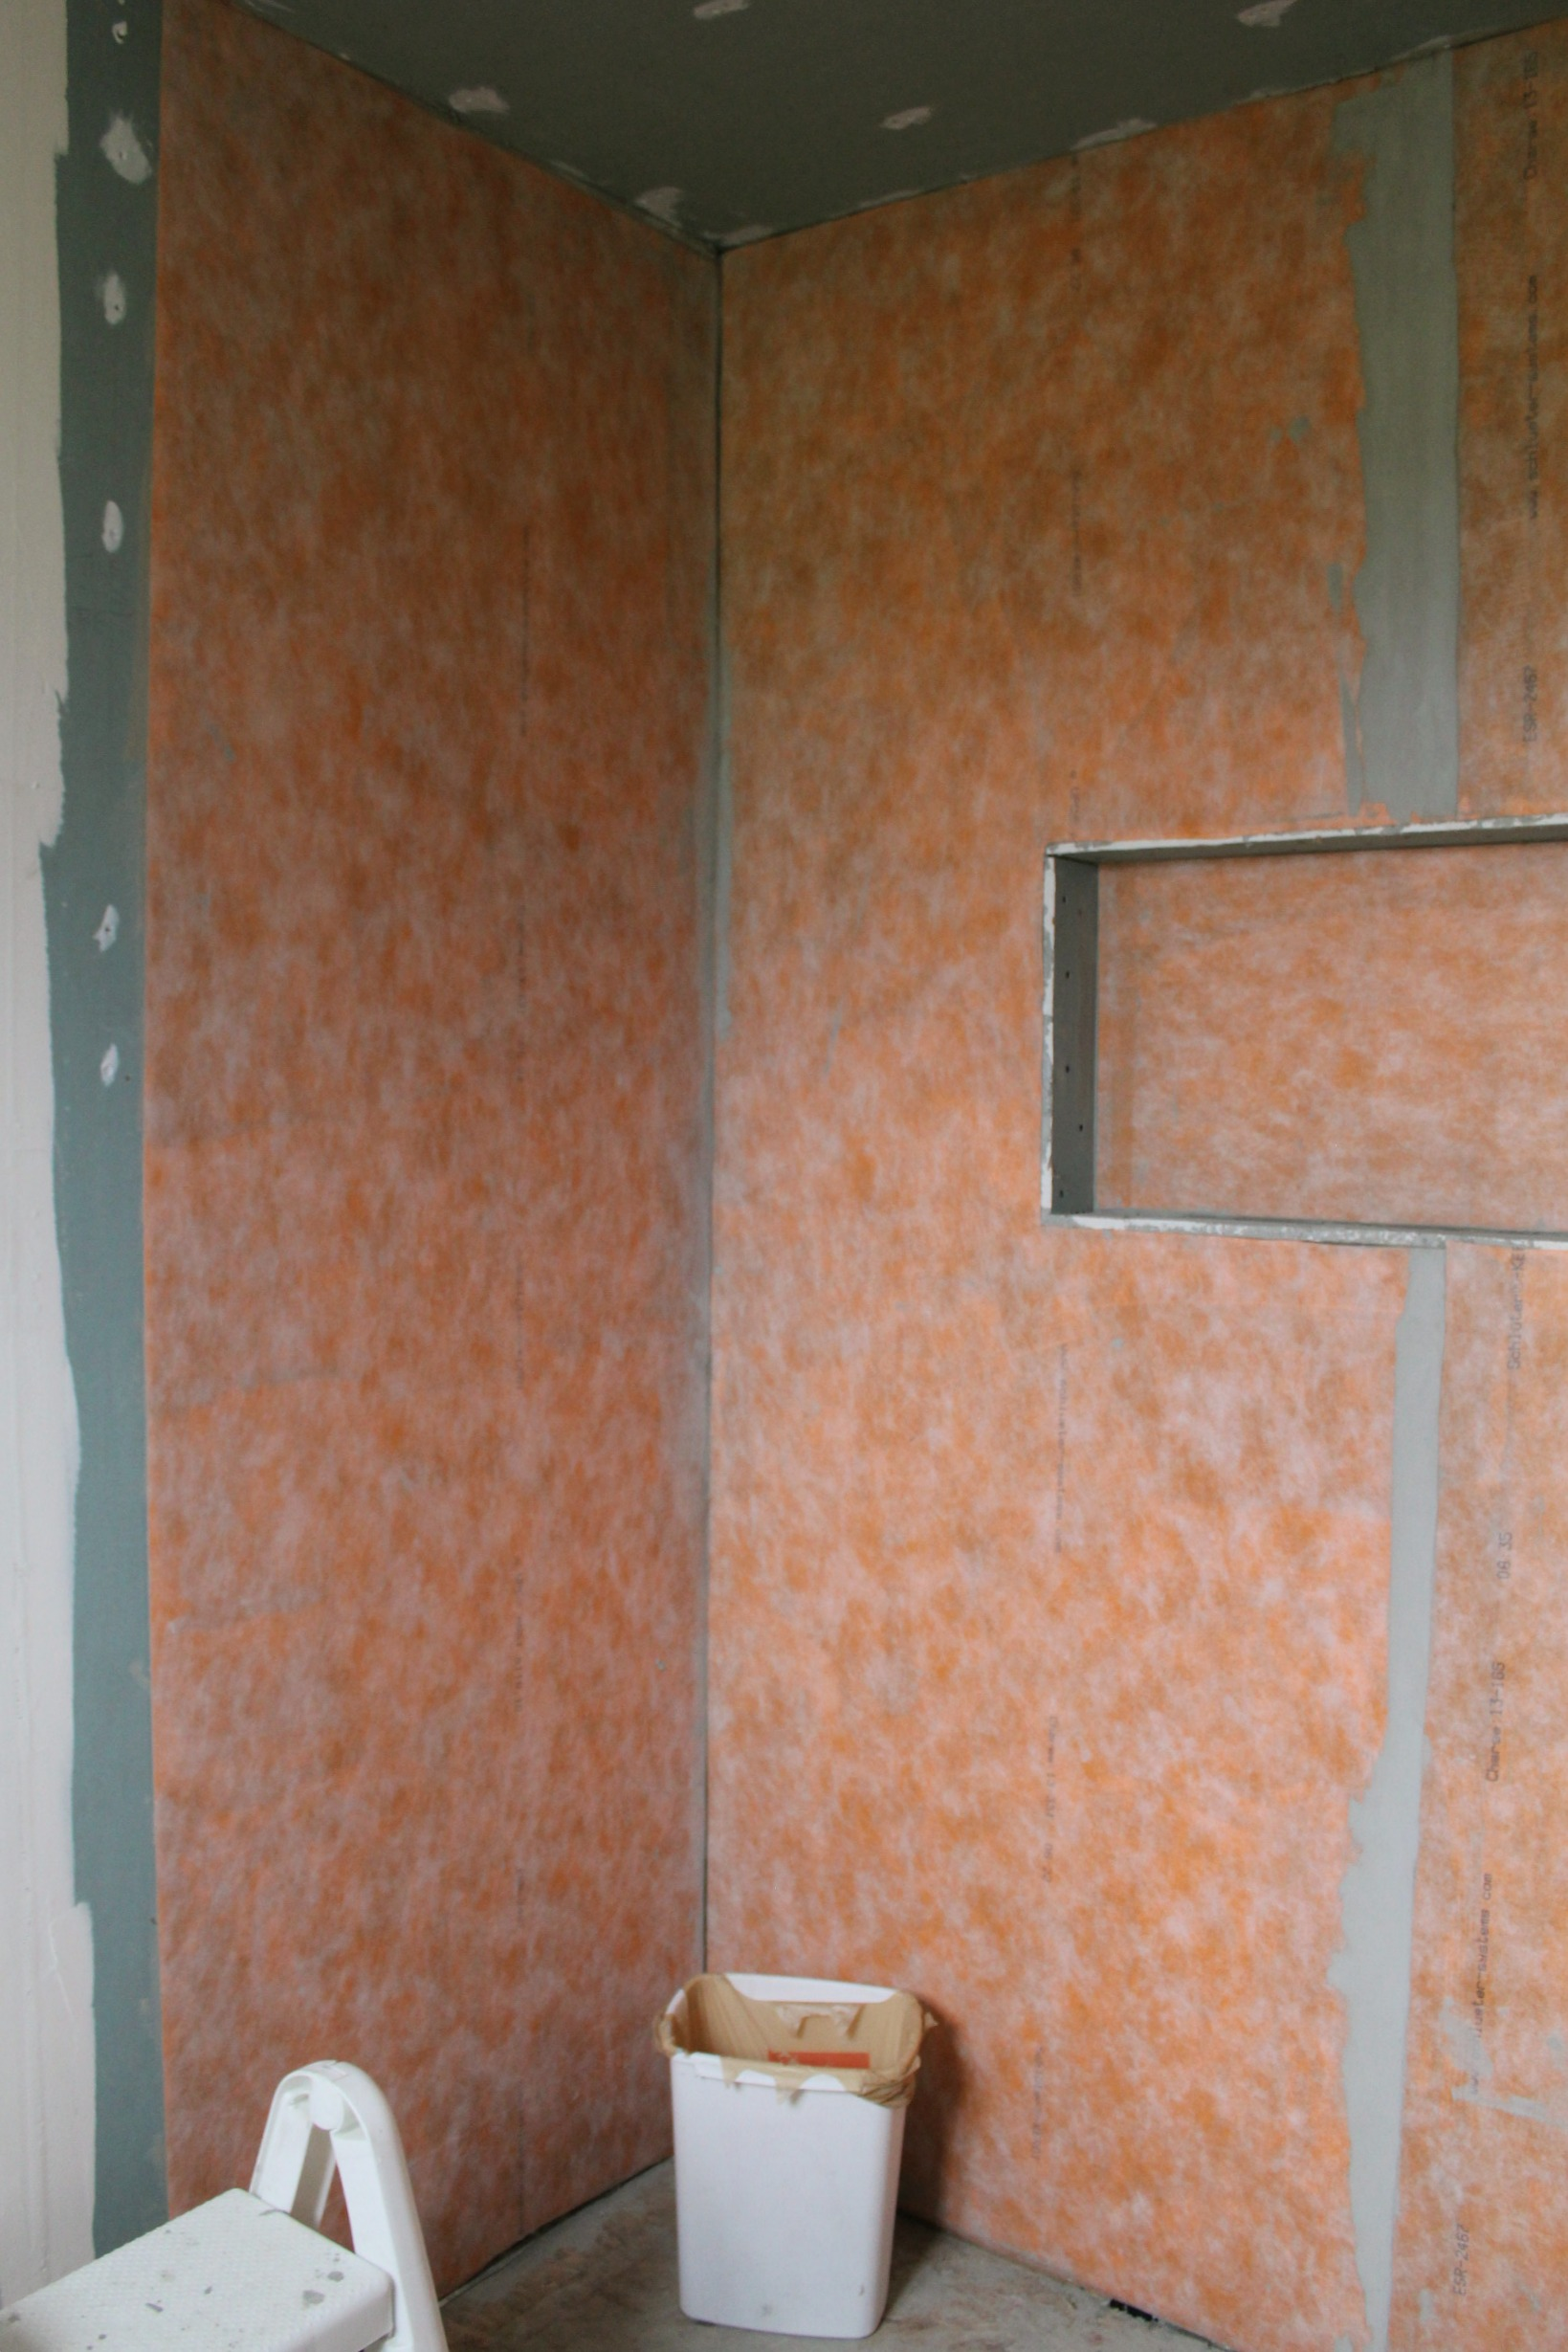 kerdi shower membrane